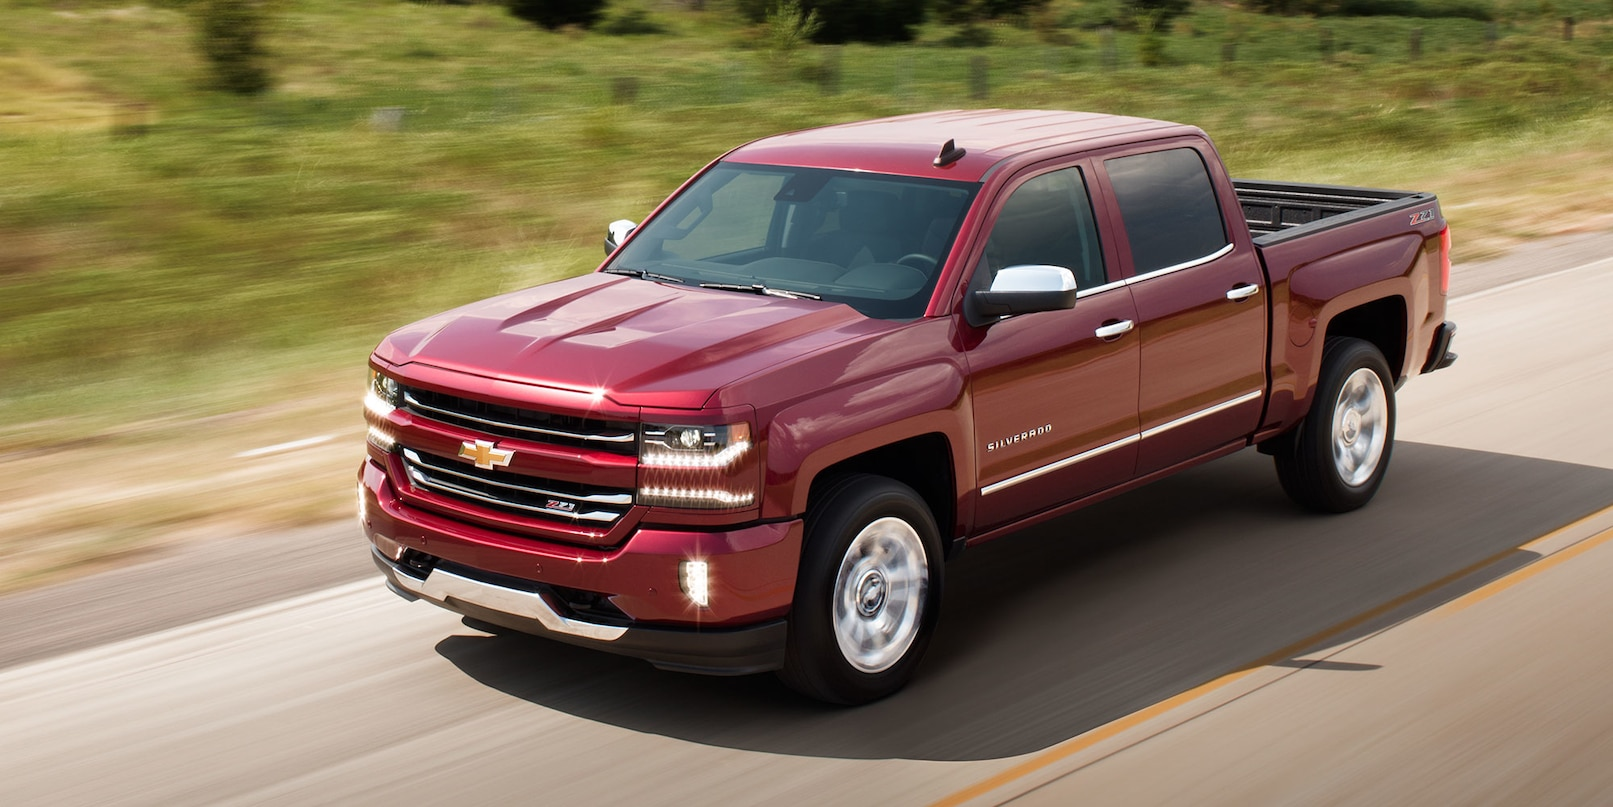 2018 Chevrolet Silverado 1500 for Sale in Elk Grove, CA